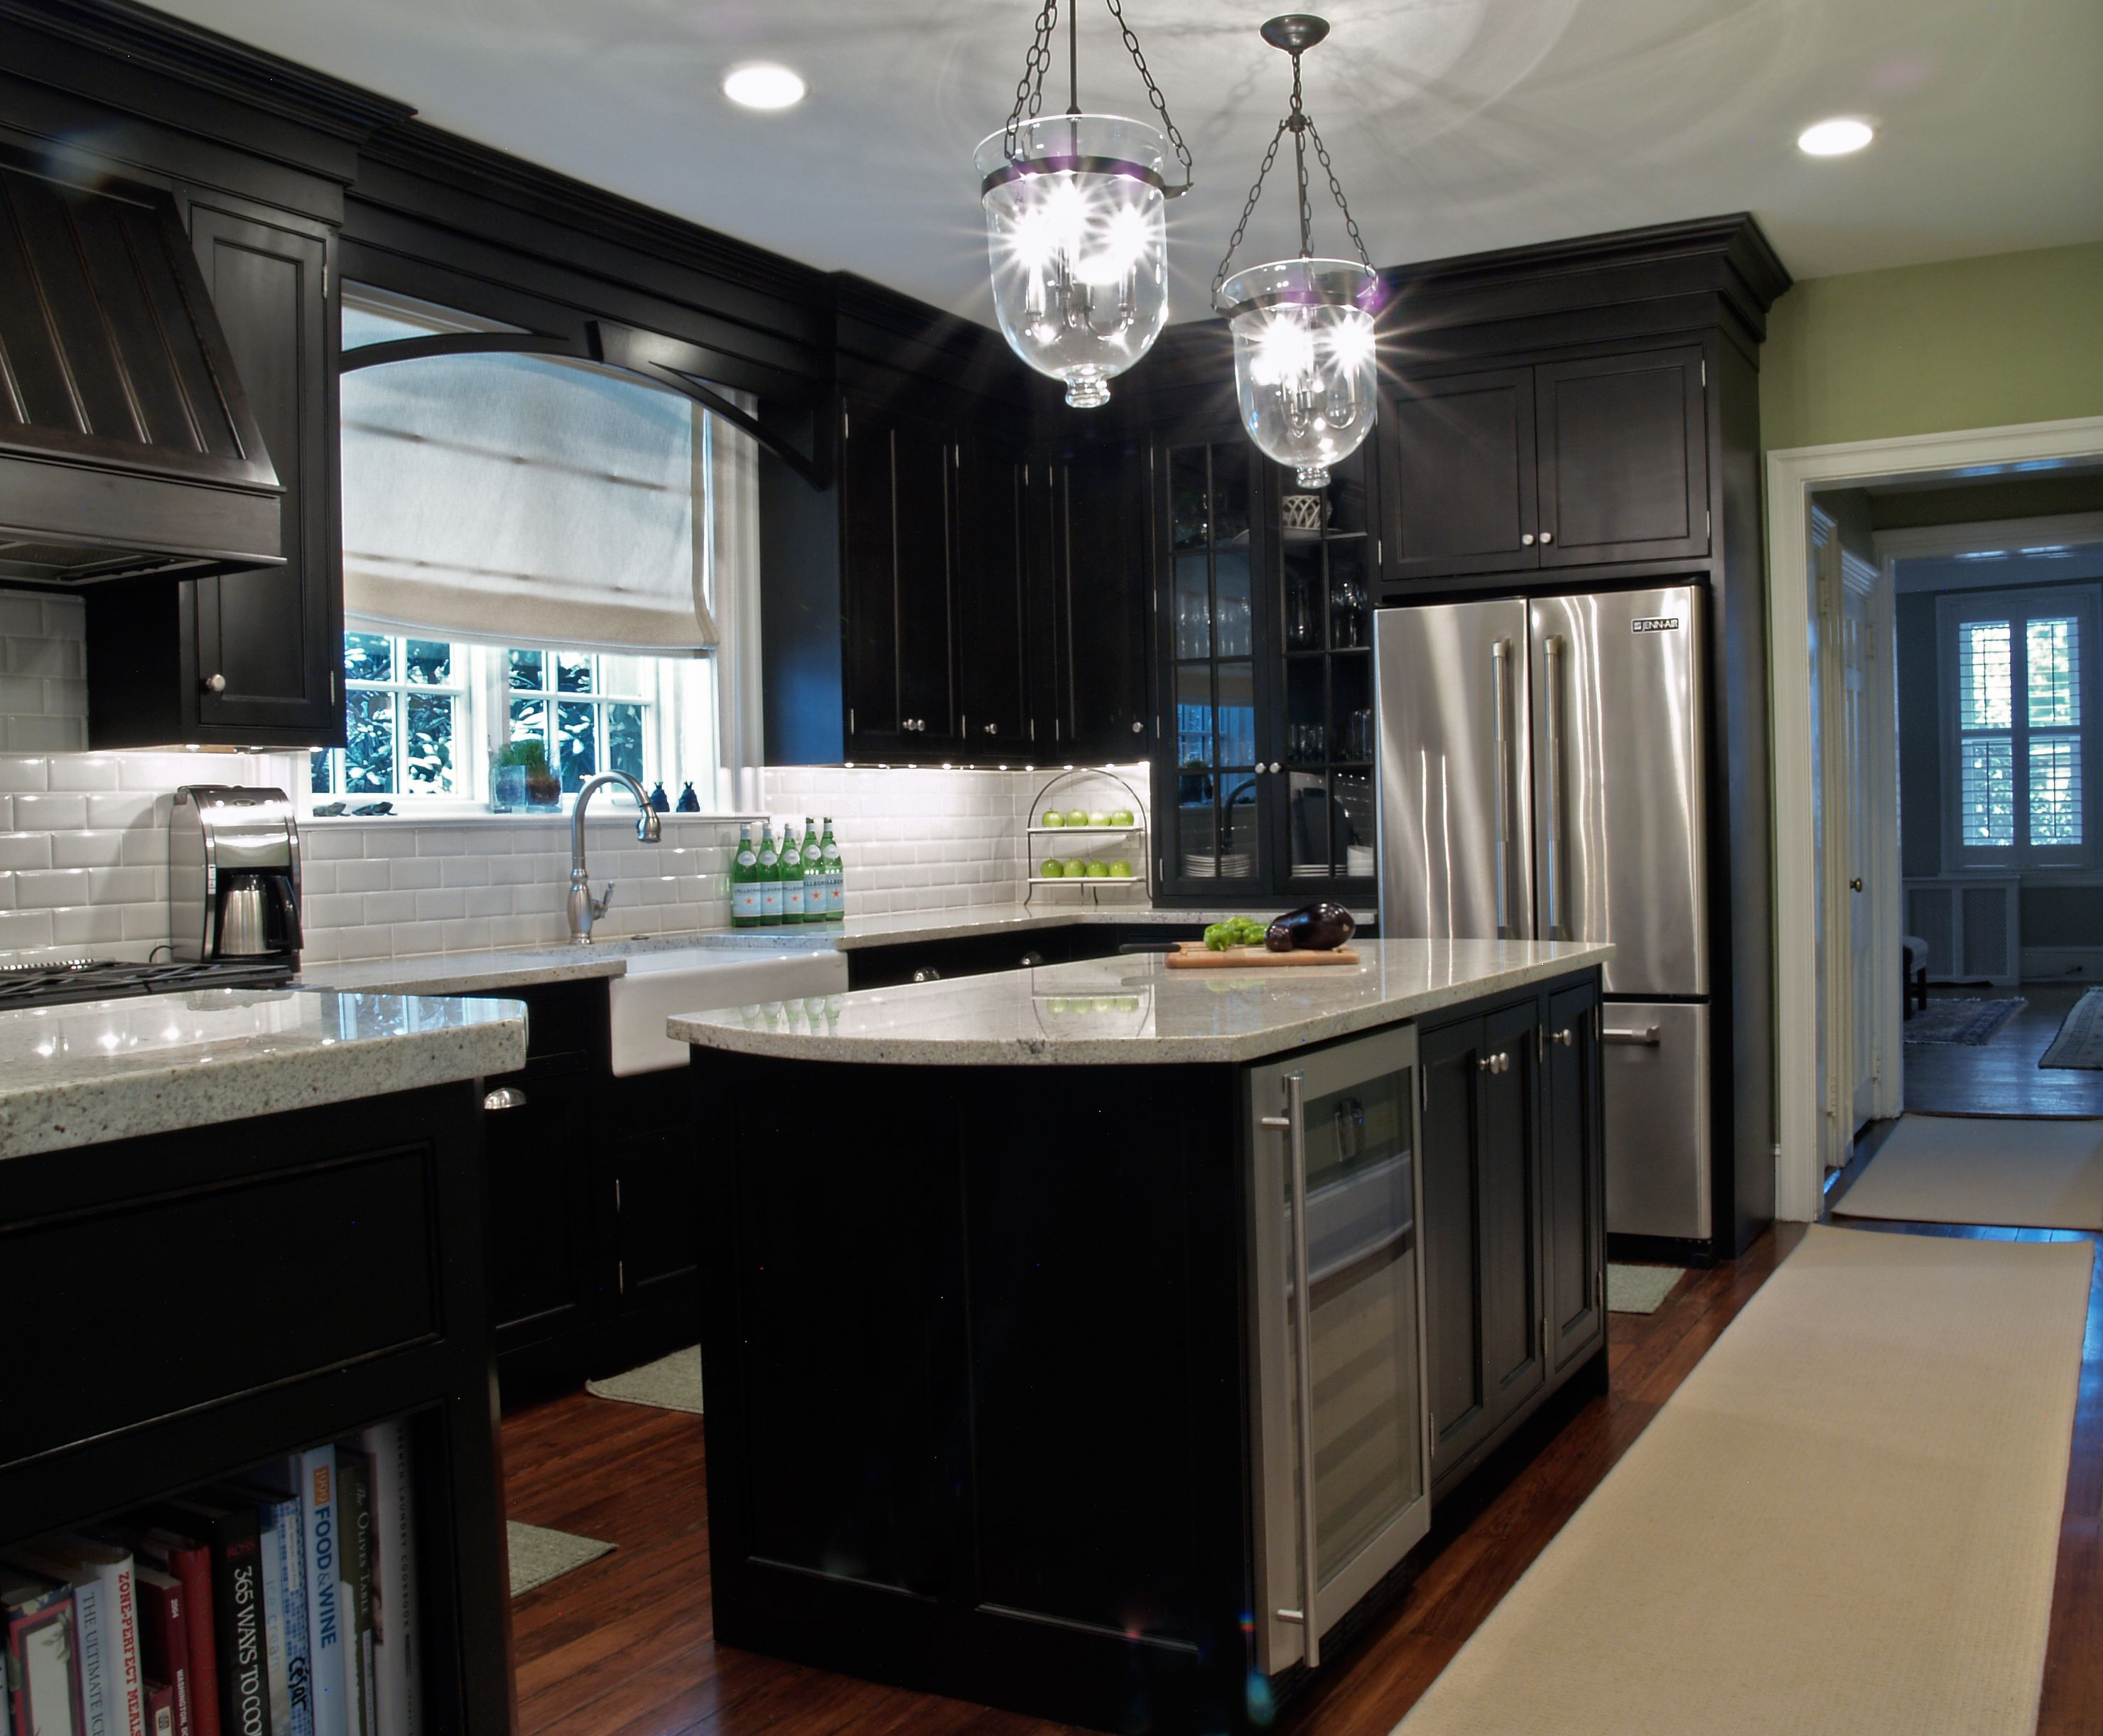 Remodeled double wide kitchens Before and After   chang kitchen1.jpg   Stuff I want to make ...